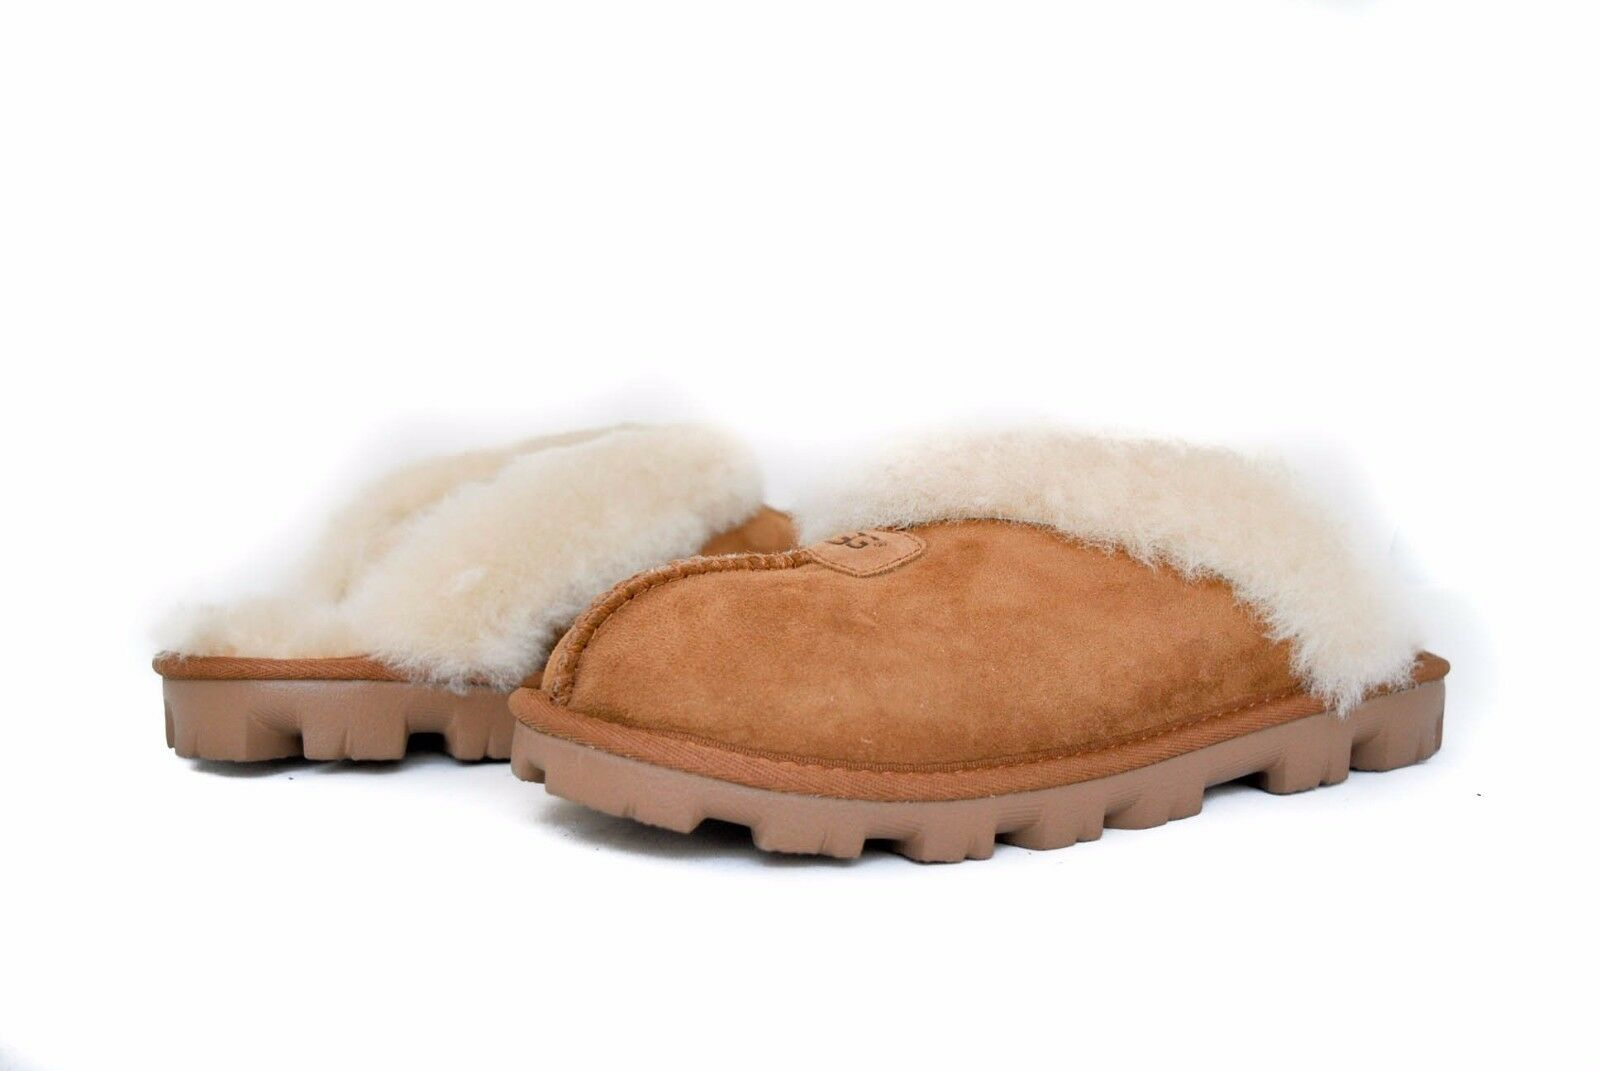 UGG Women COQUETTE SLIPPERS Slip on 5125 in CHESTNUT Sz 5-12 NEW